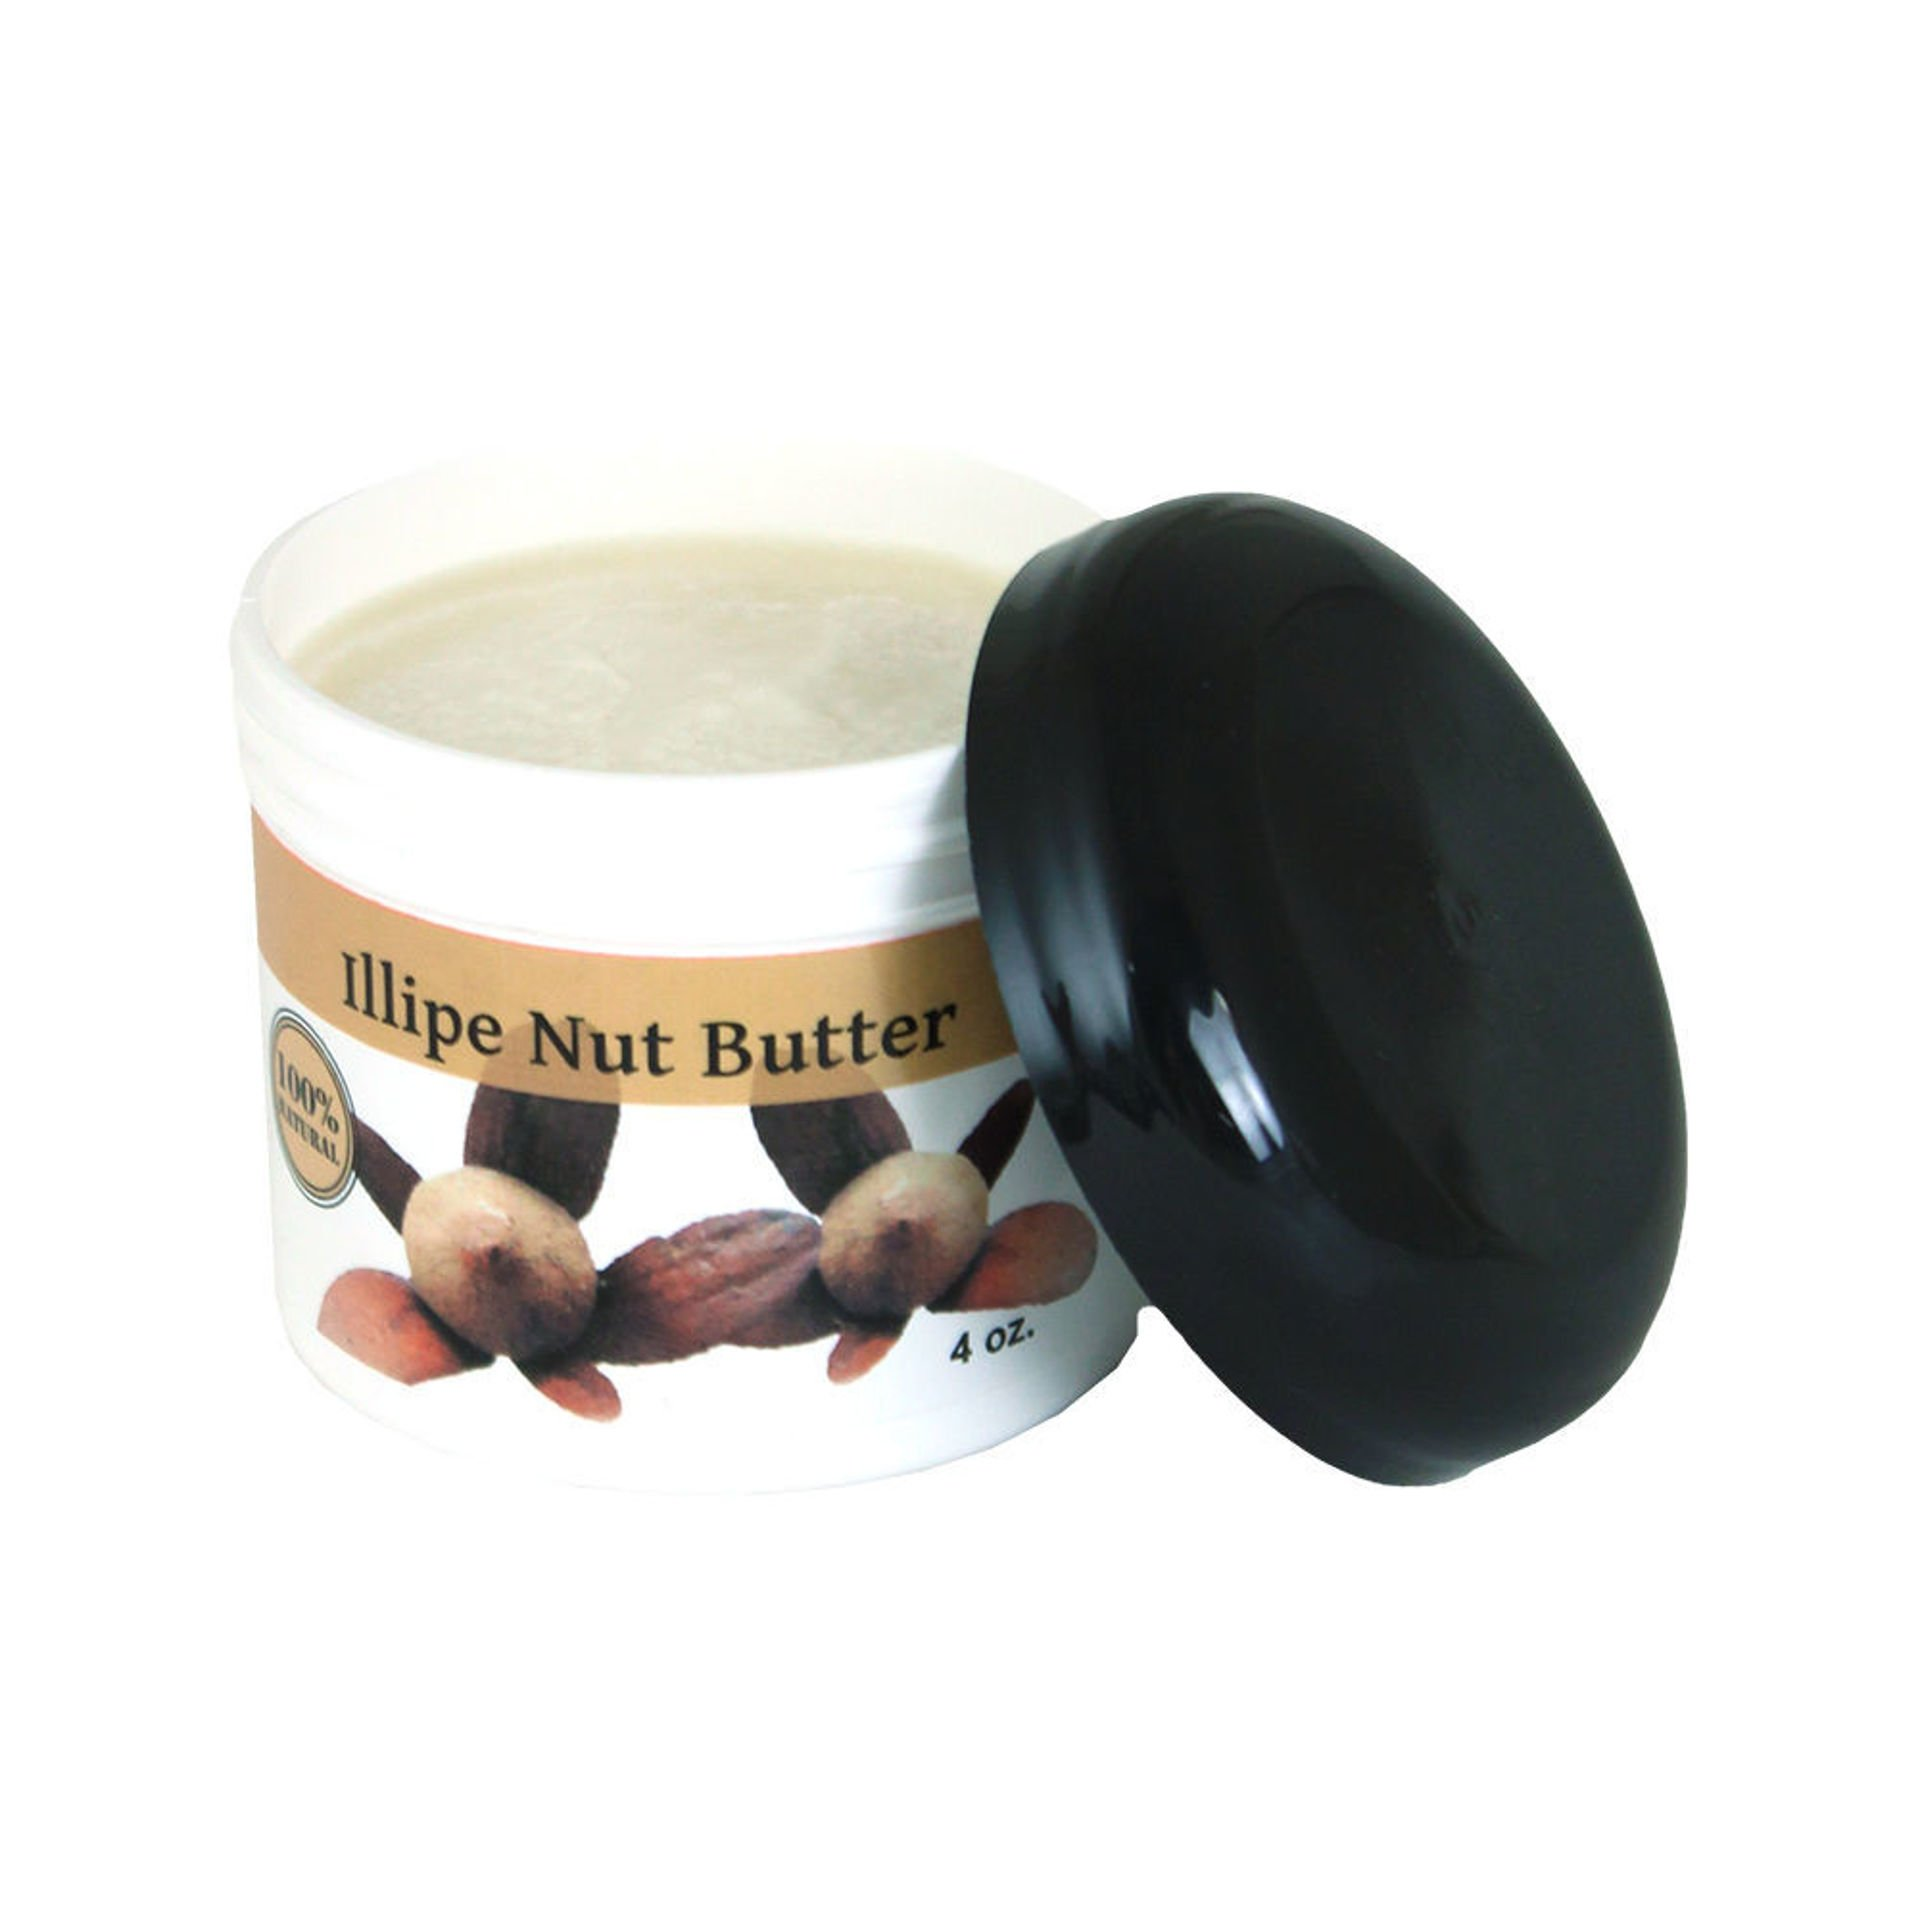 Picture of Illipe Nut Butter - 4 oz.